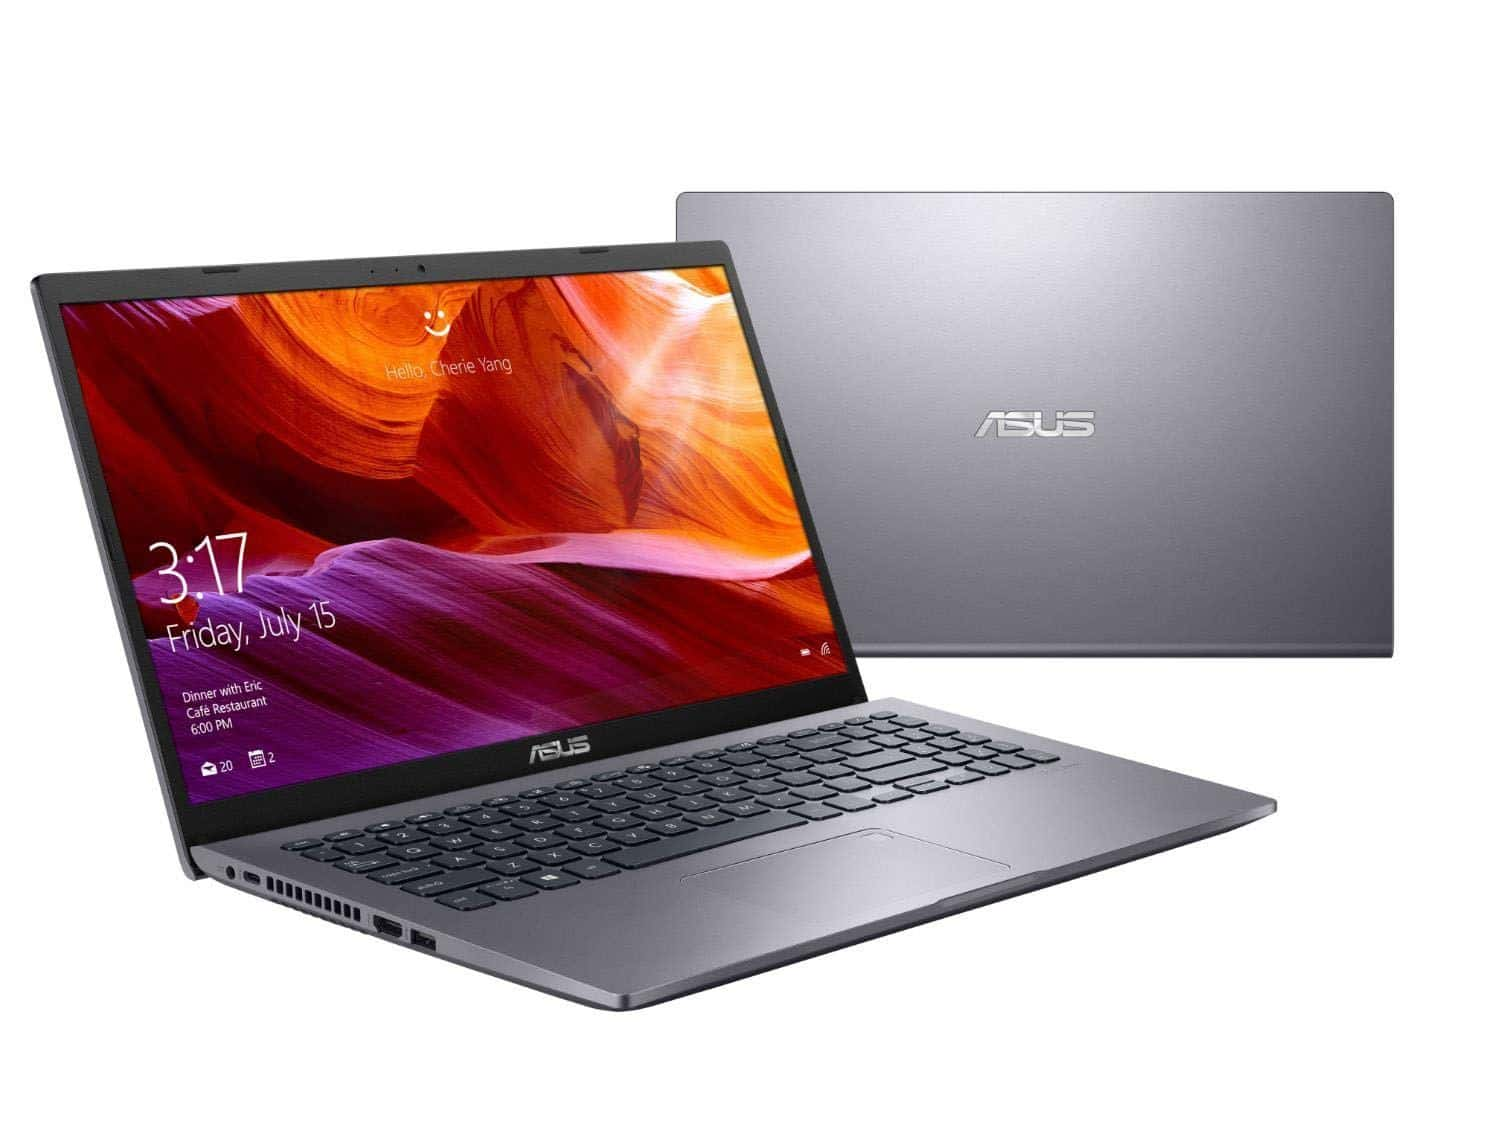 Best Laptop for Reducing Glare